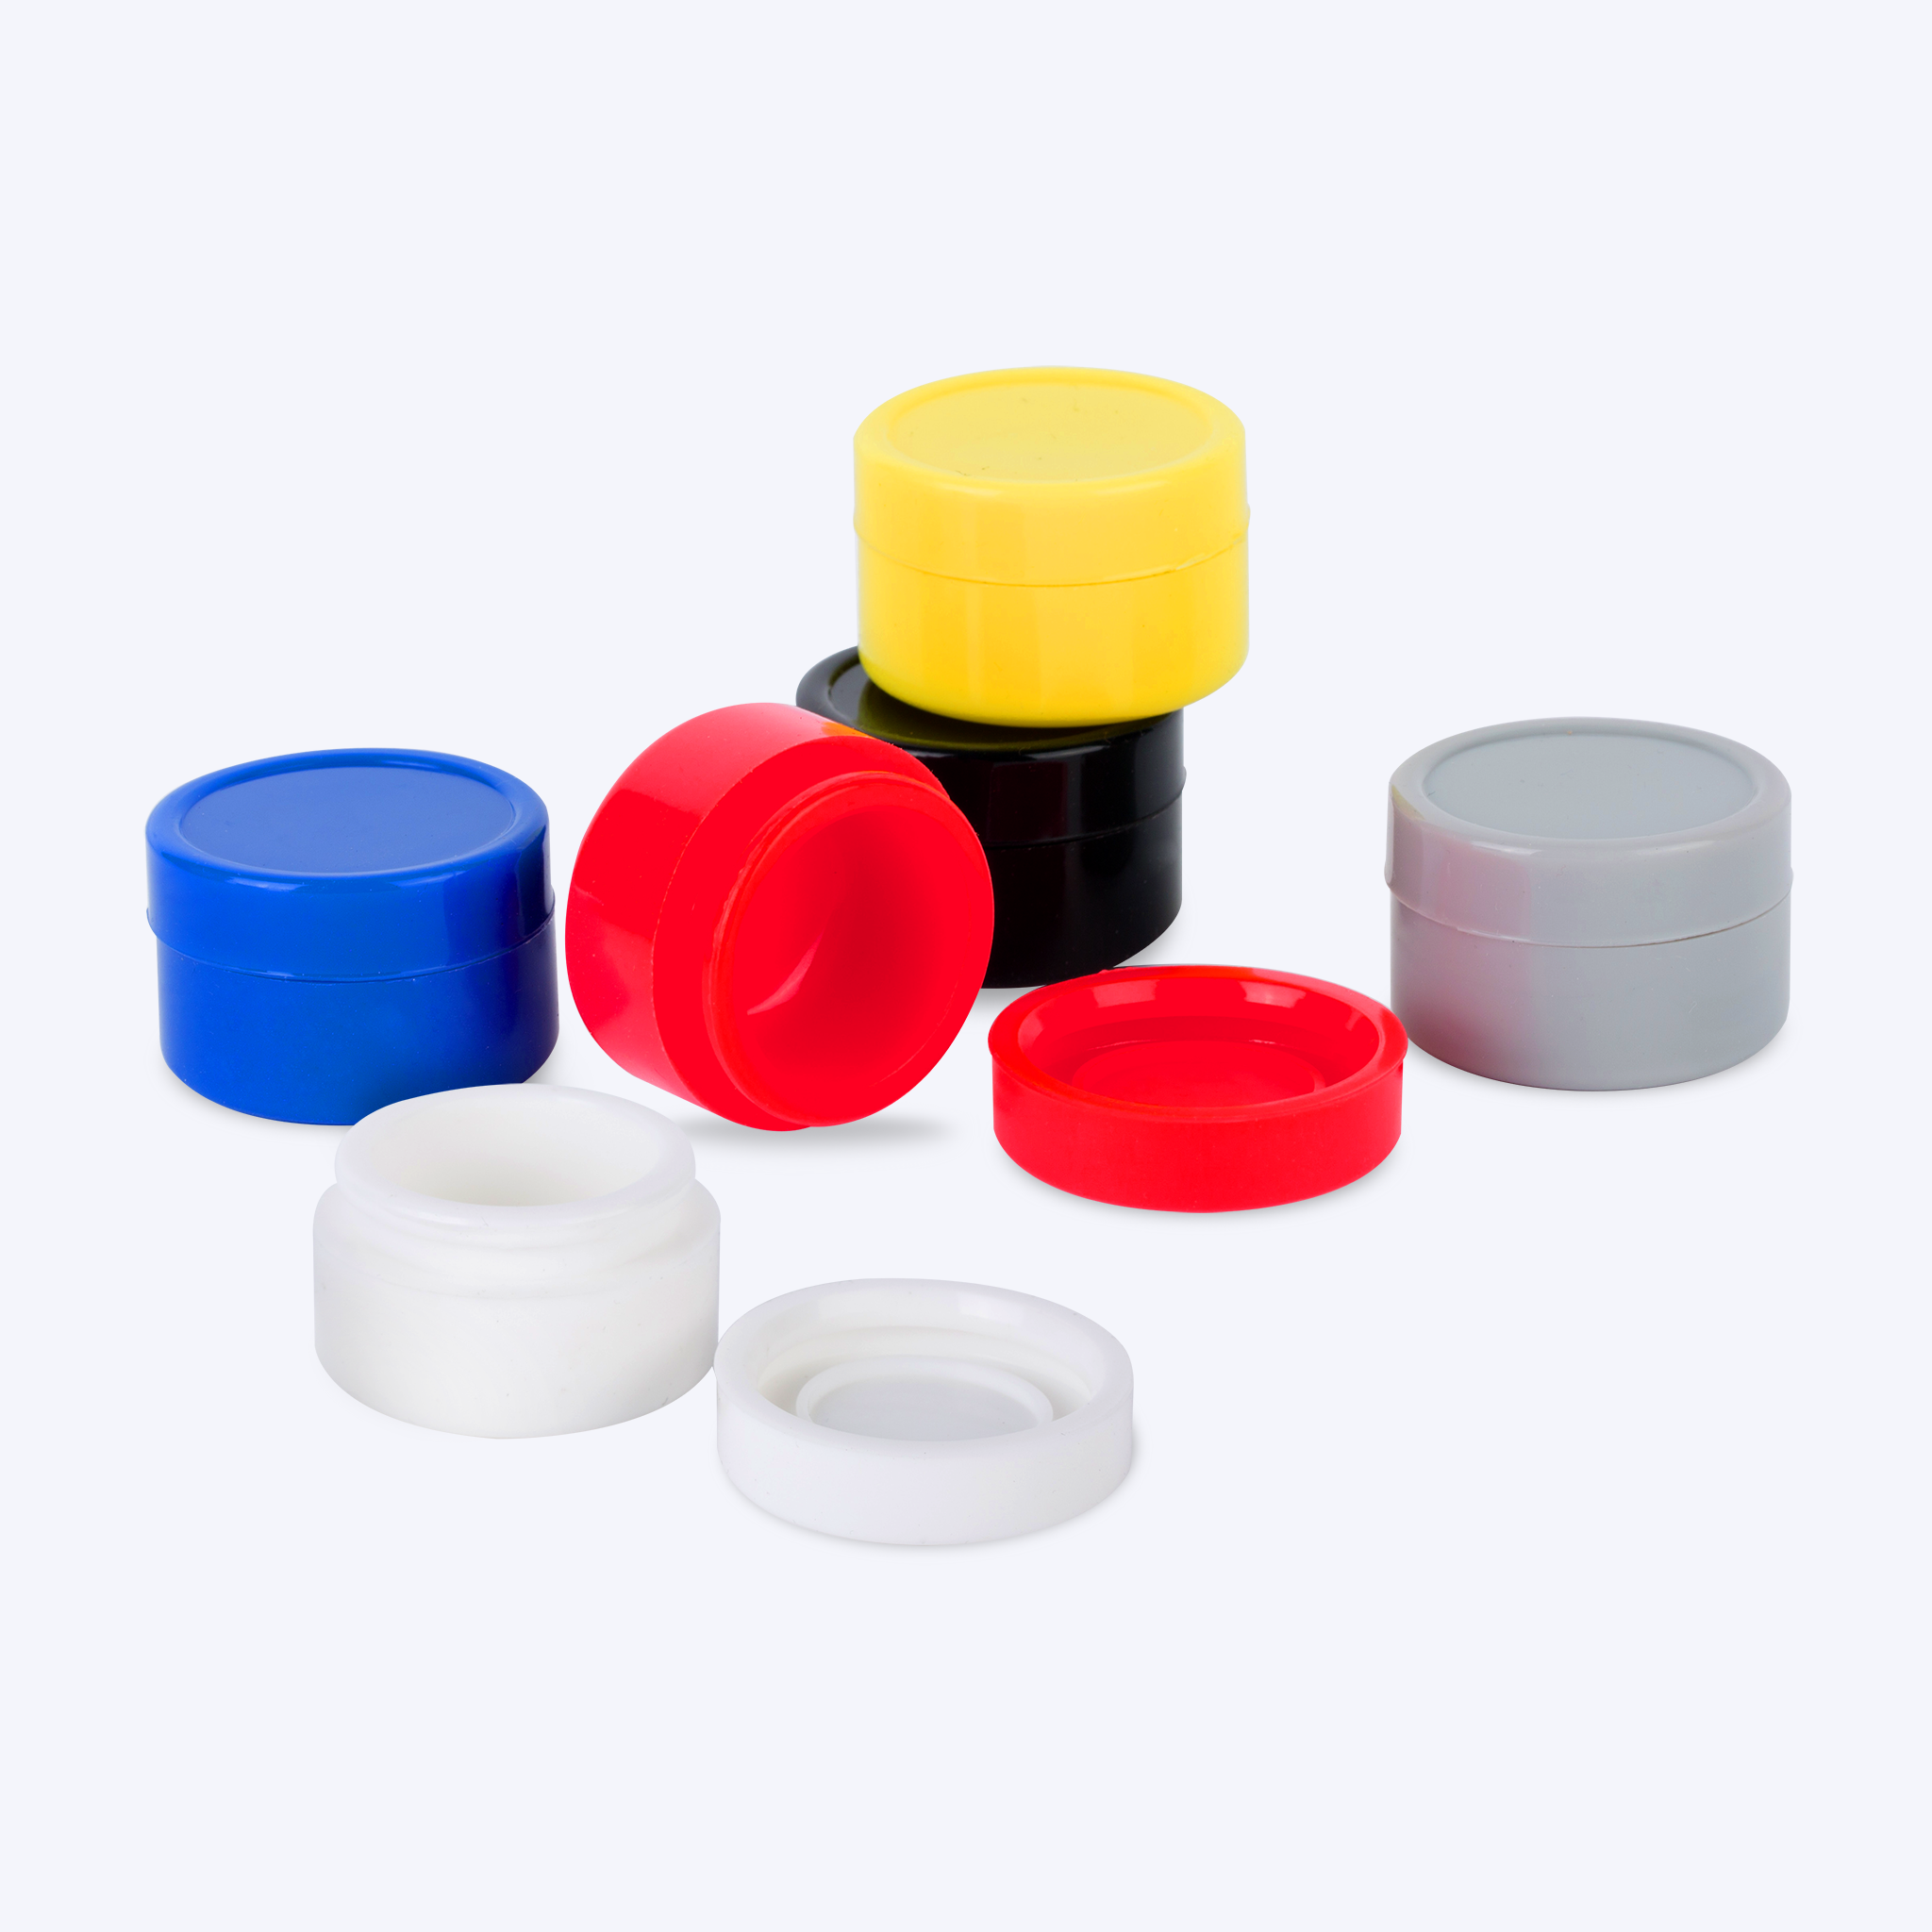 5 ml - Silicone Concentrate Containers